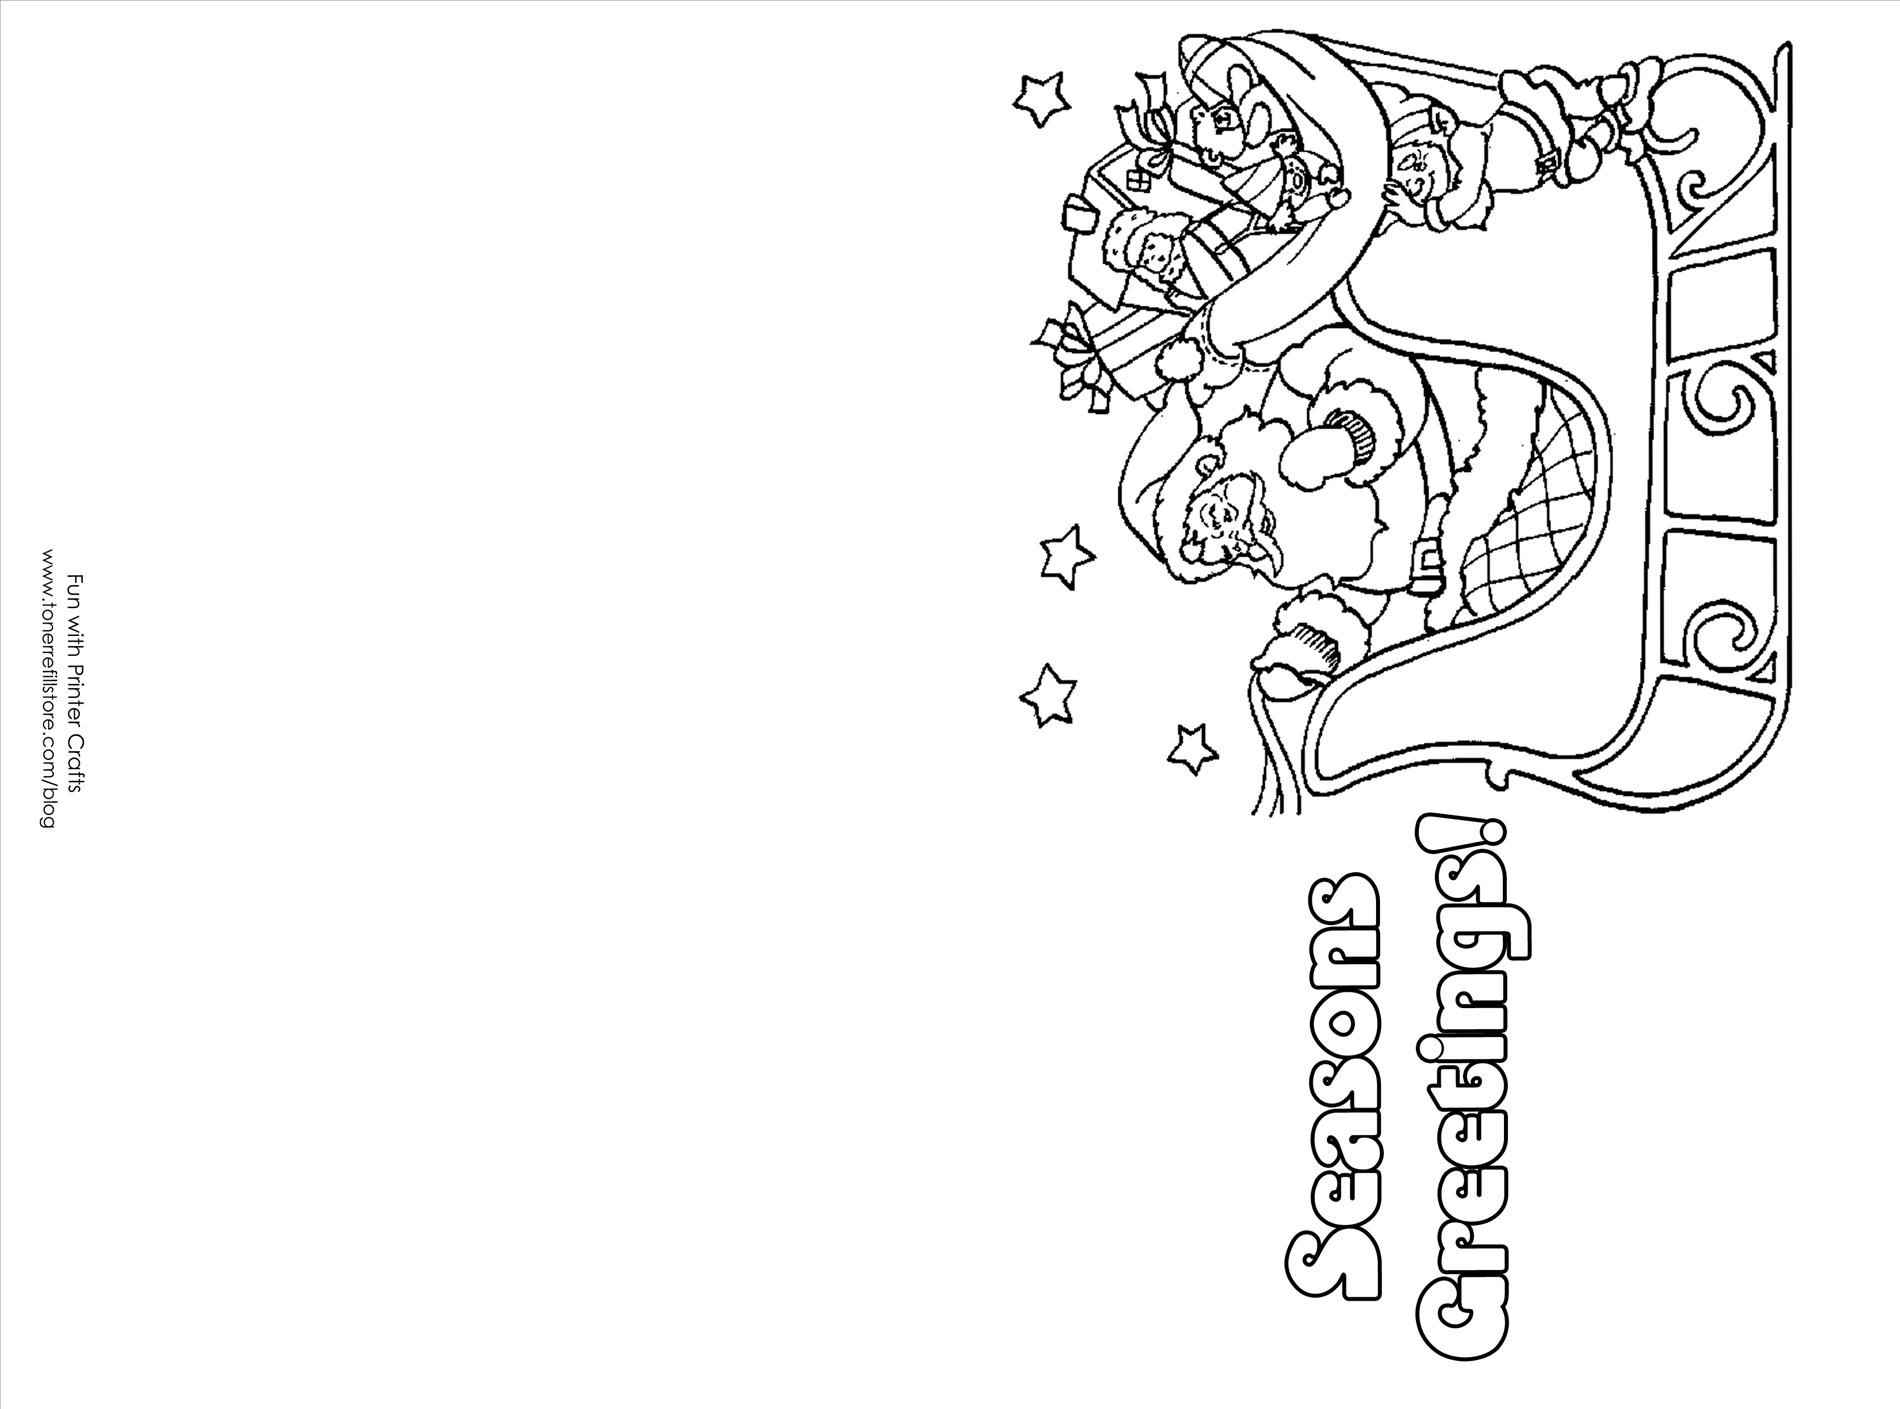 stocking coloring page - christmas card kitten draw so cute coloring pages